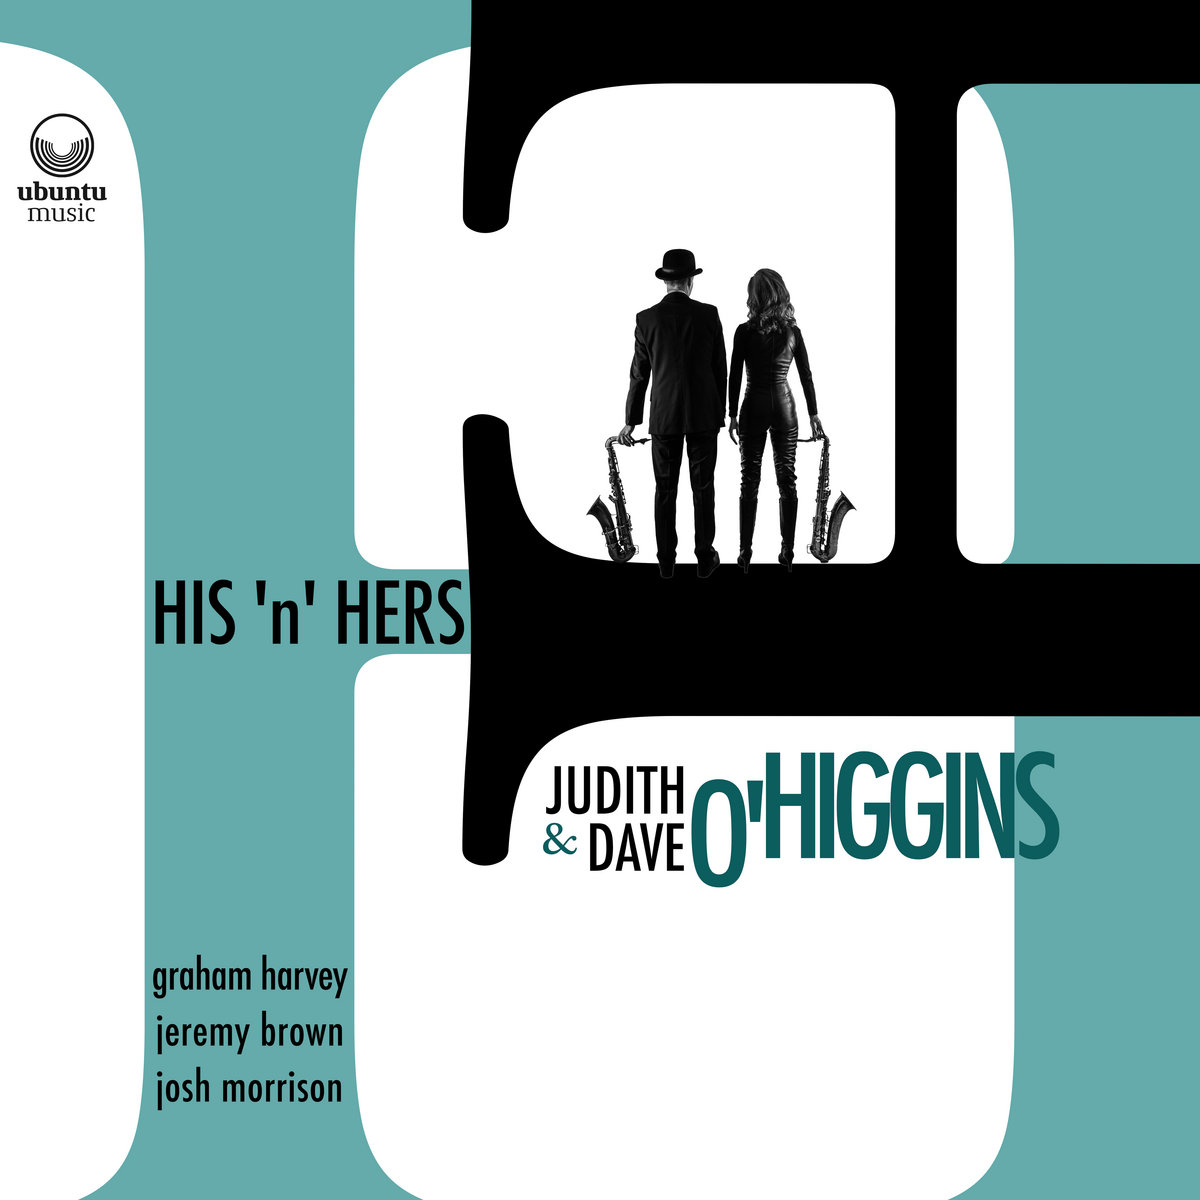 Review of Judith and Dave O'Higgins: His 'n' Hers